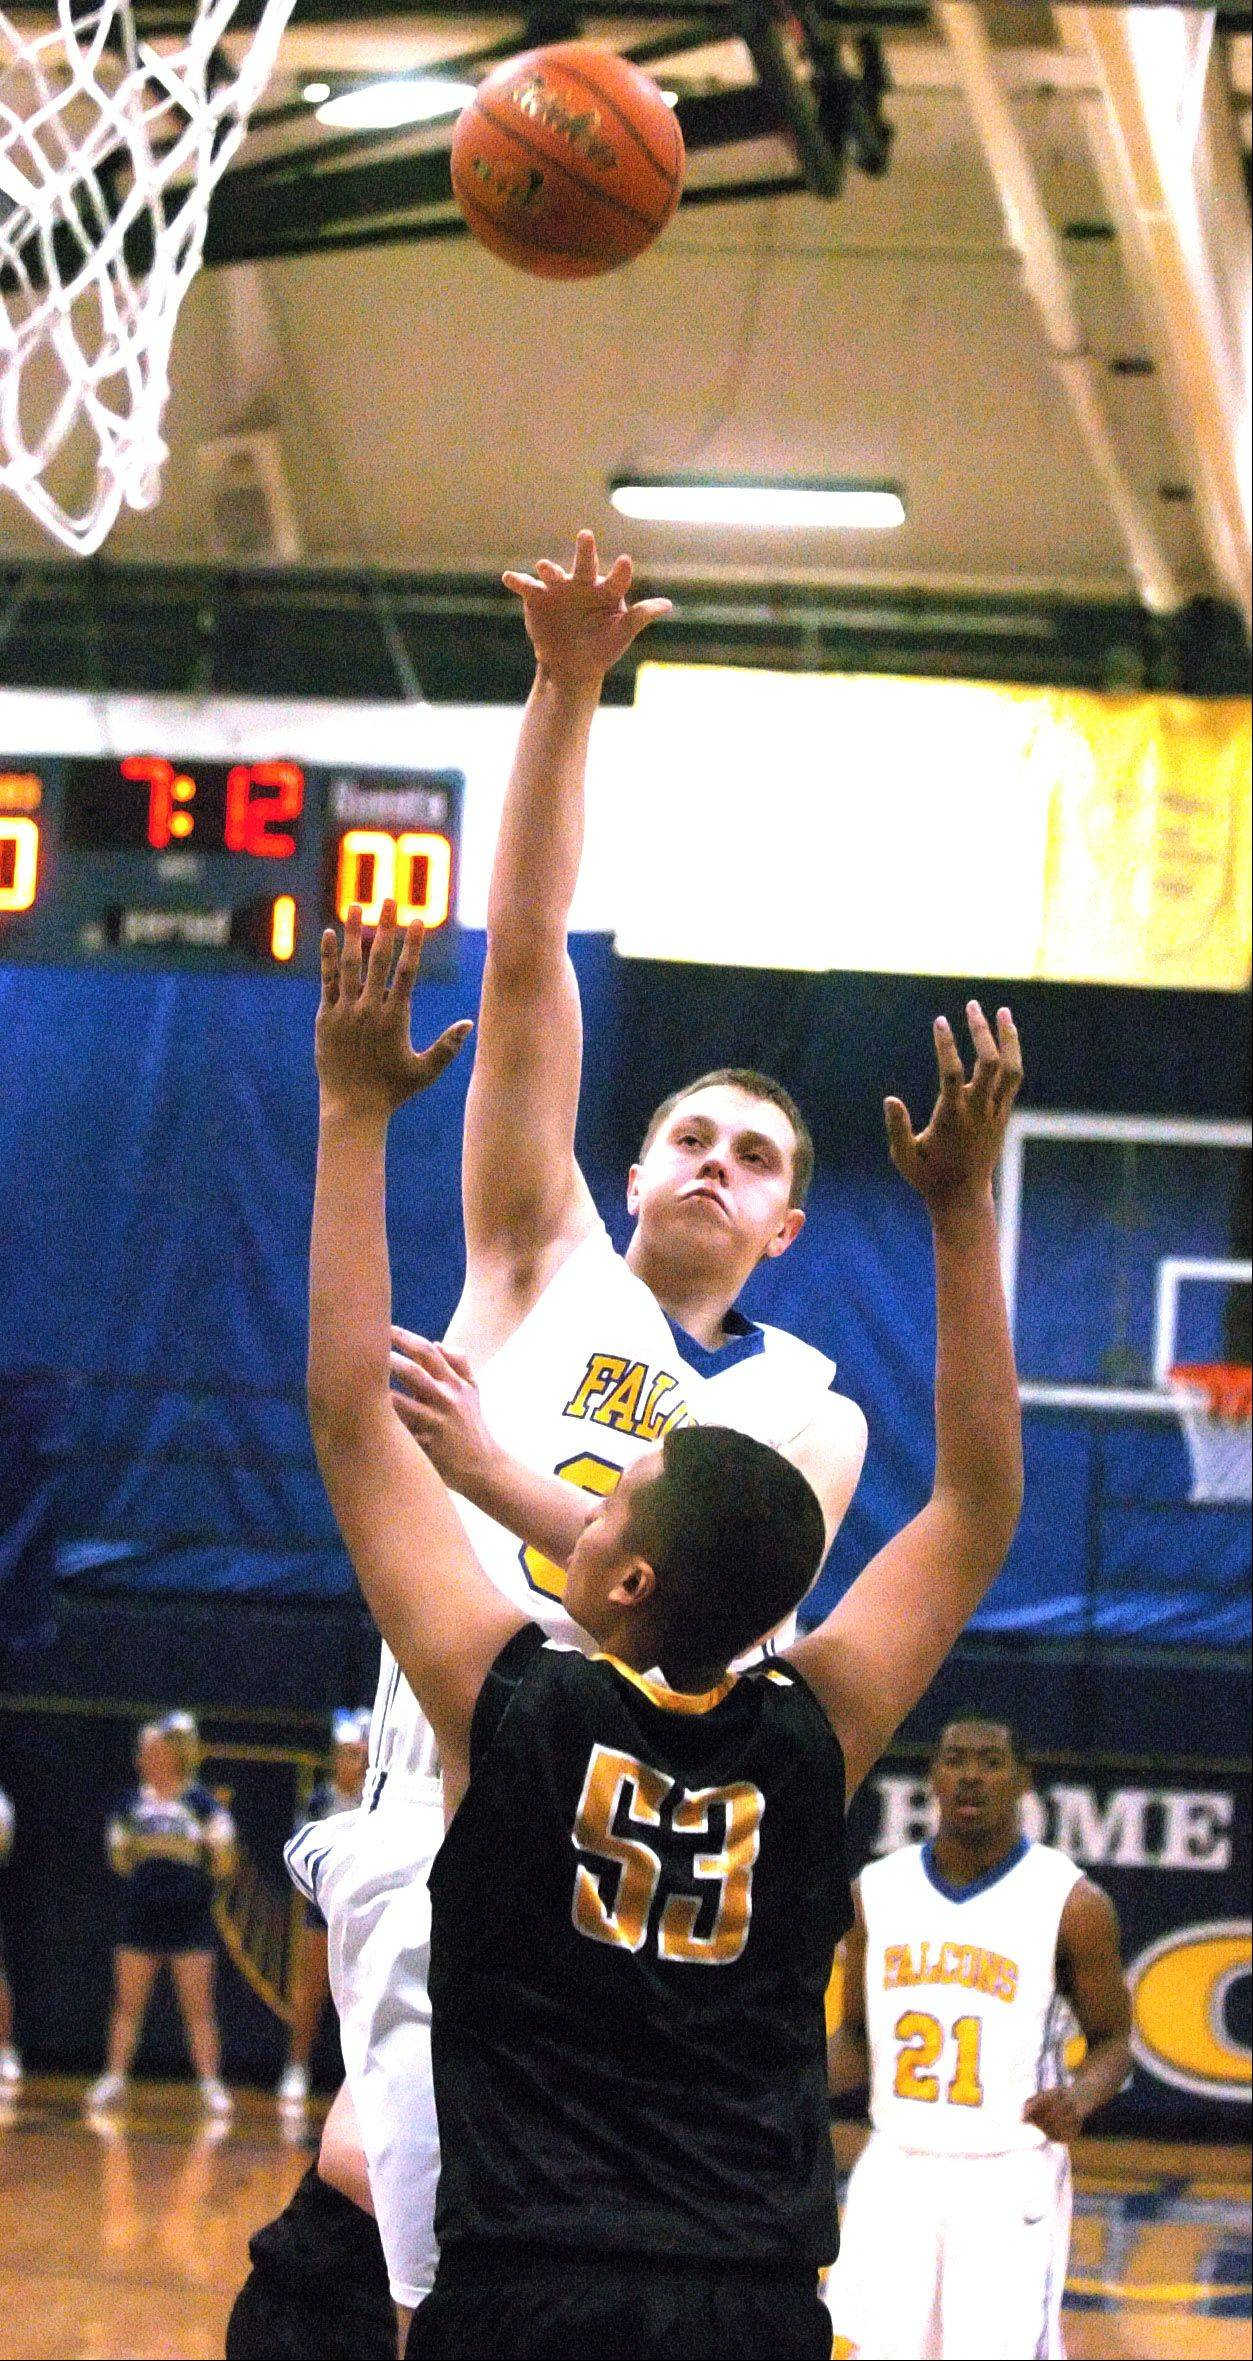 Andrew Zelis of Wheaton North puts up a shot over Barret Benson of Hinsdale South .